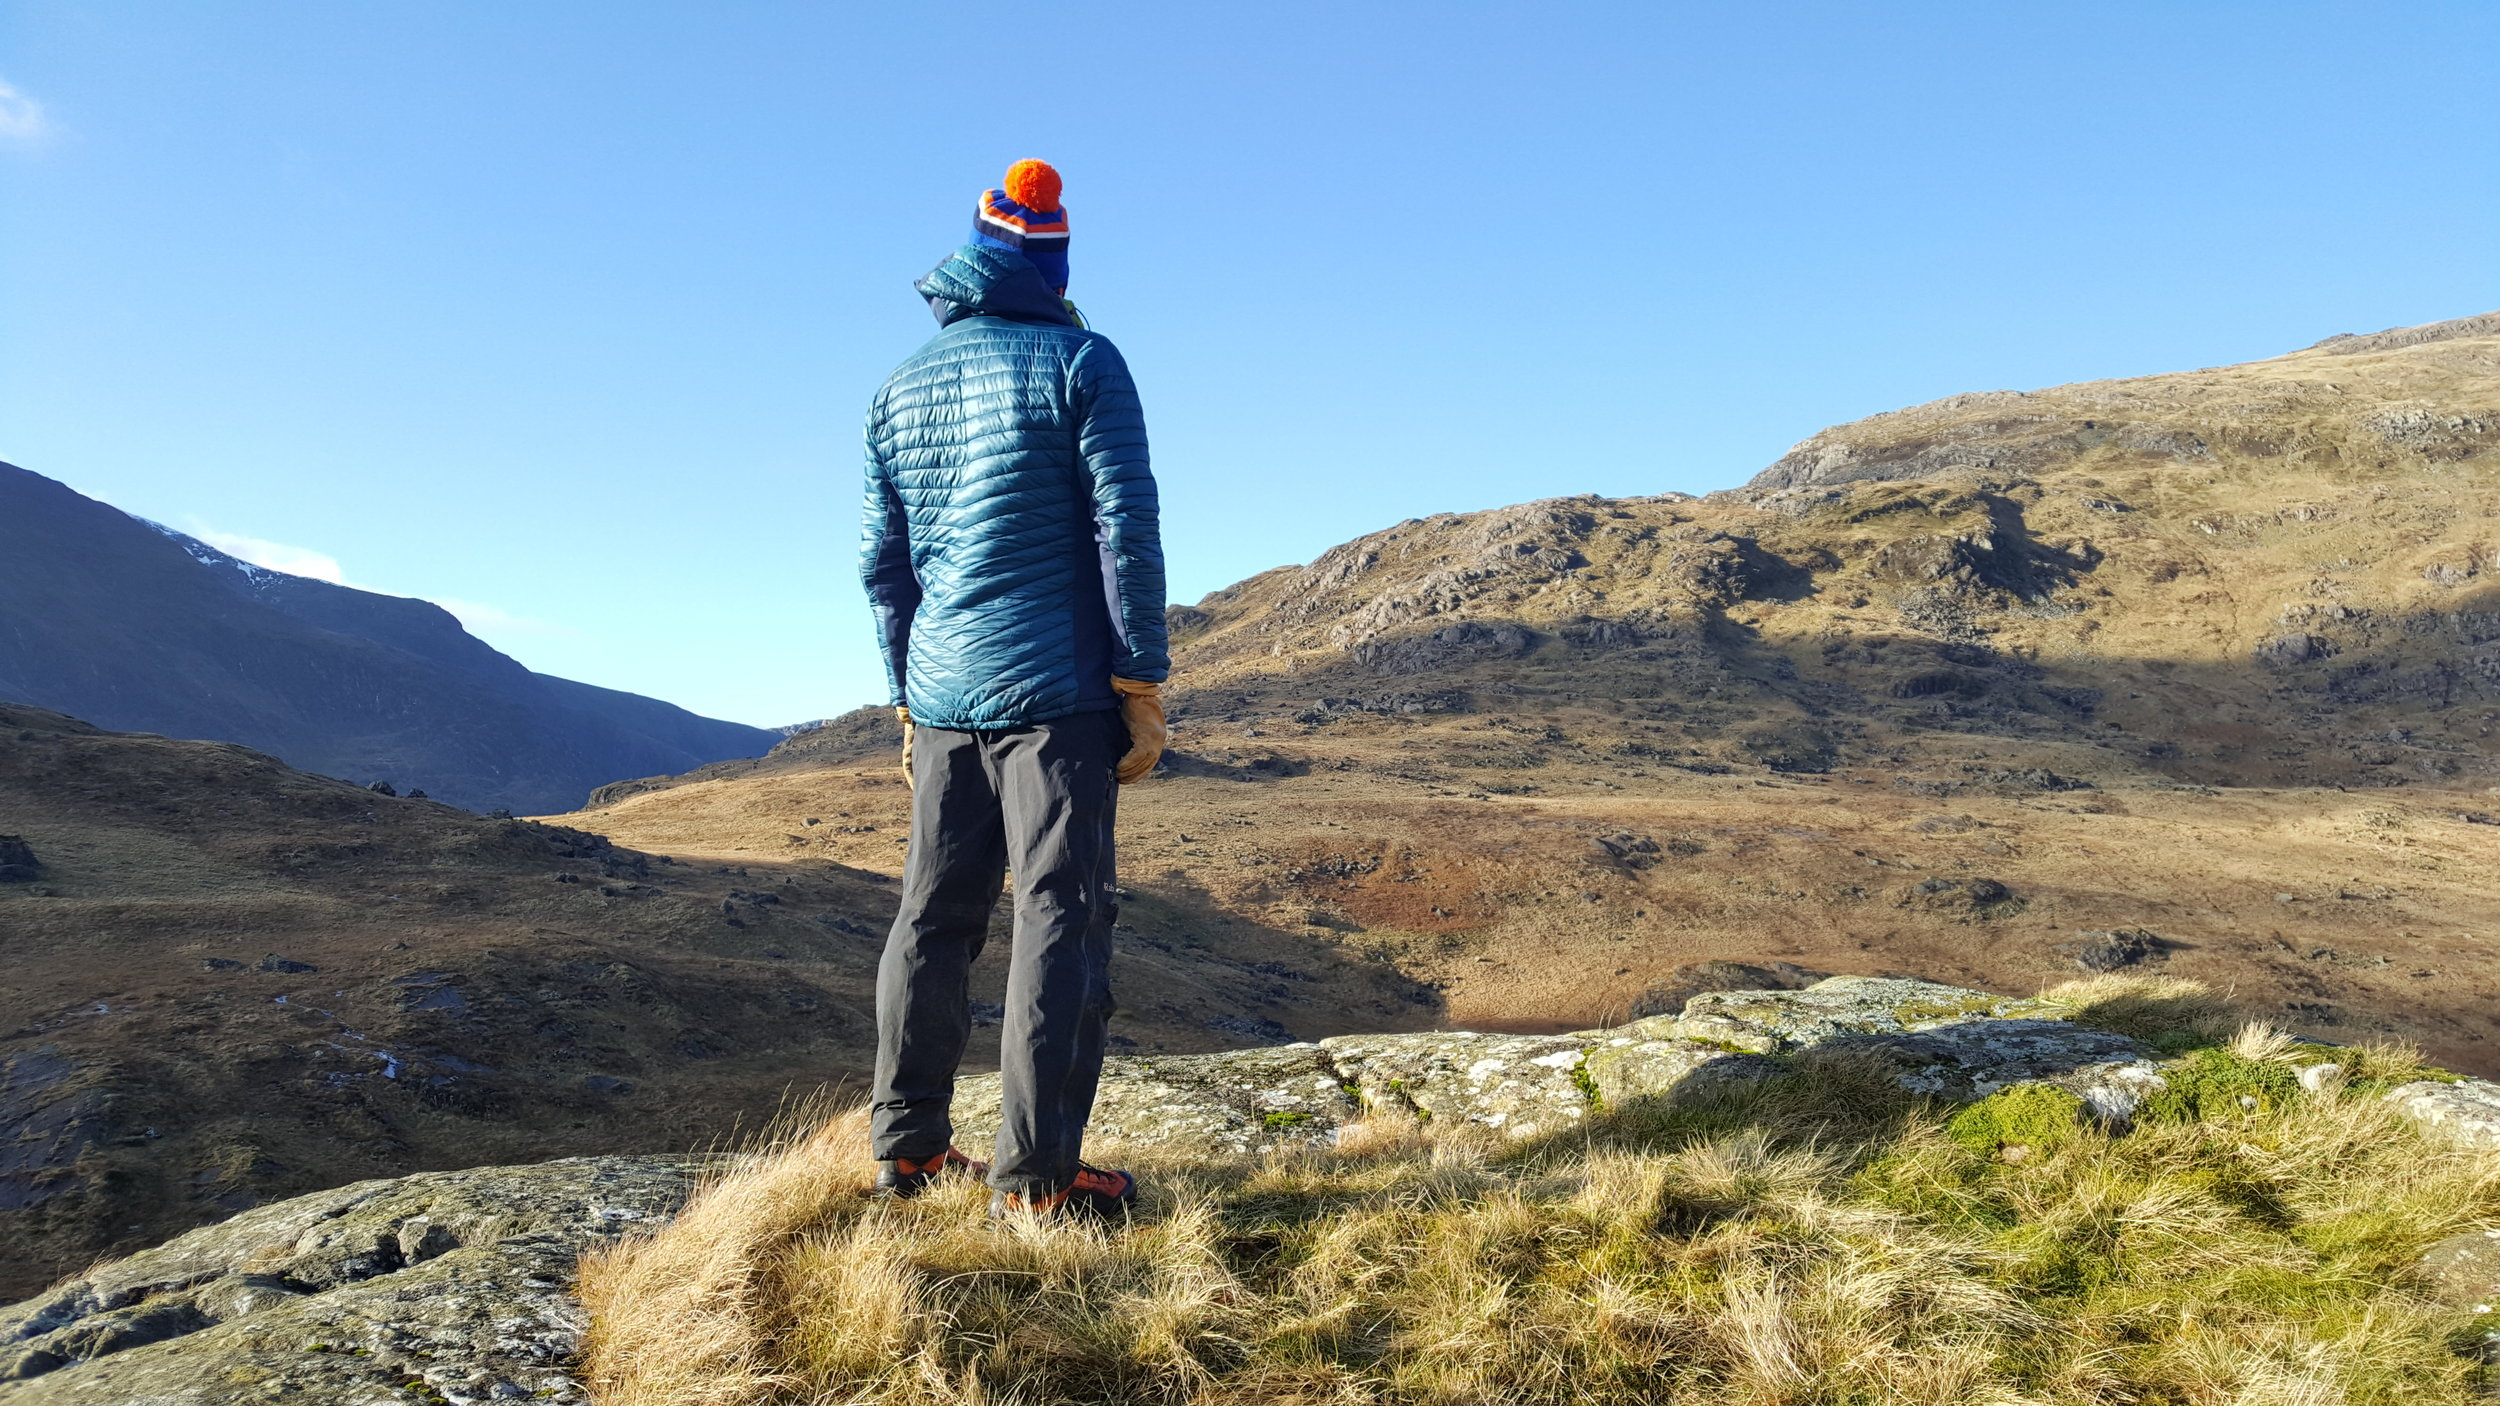 Freezing cold January day in Snowdonia